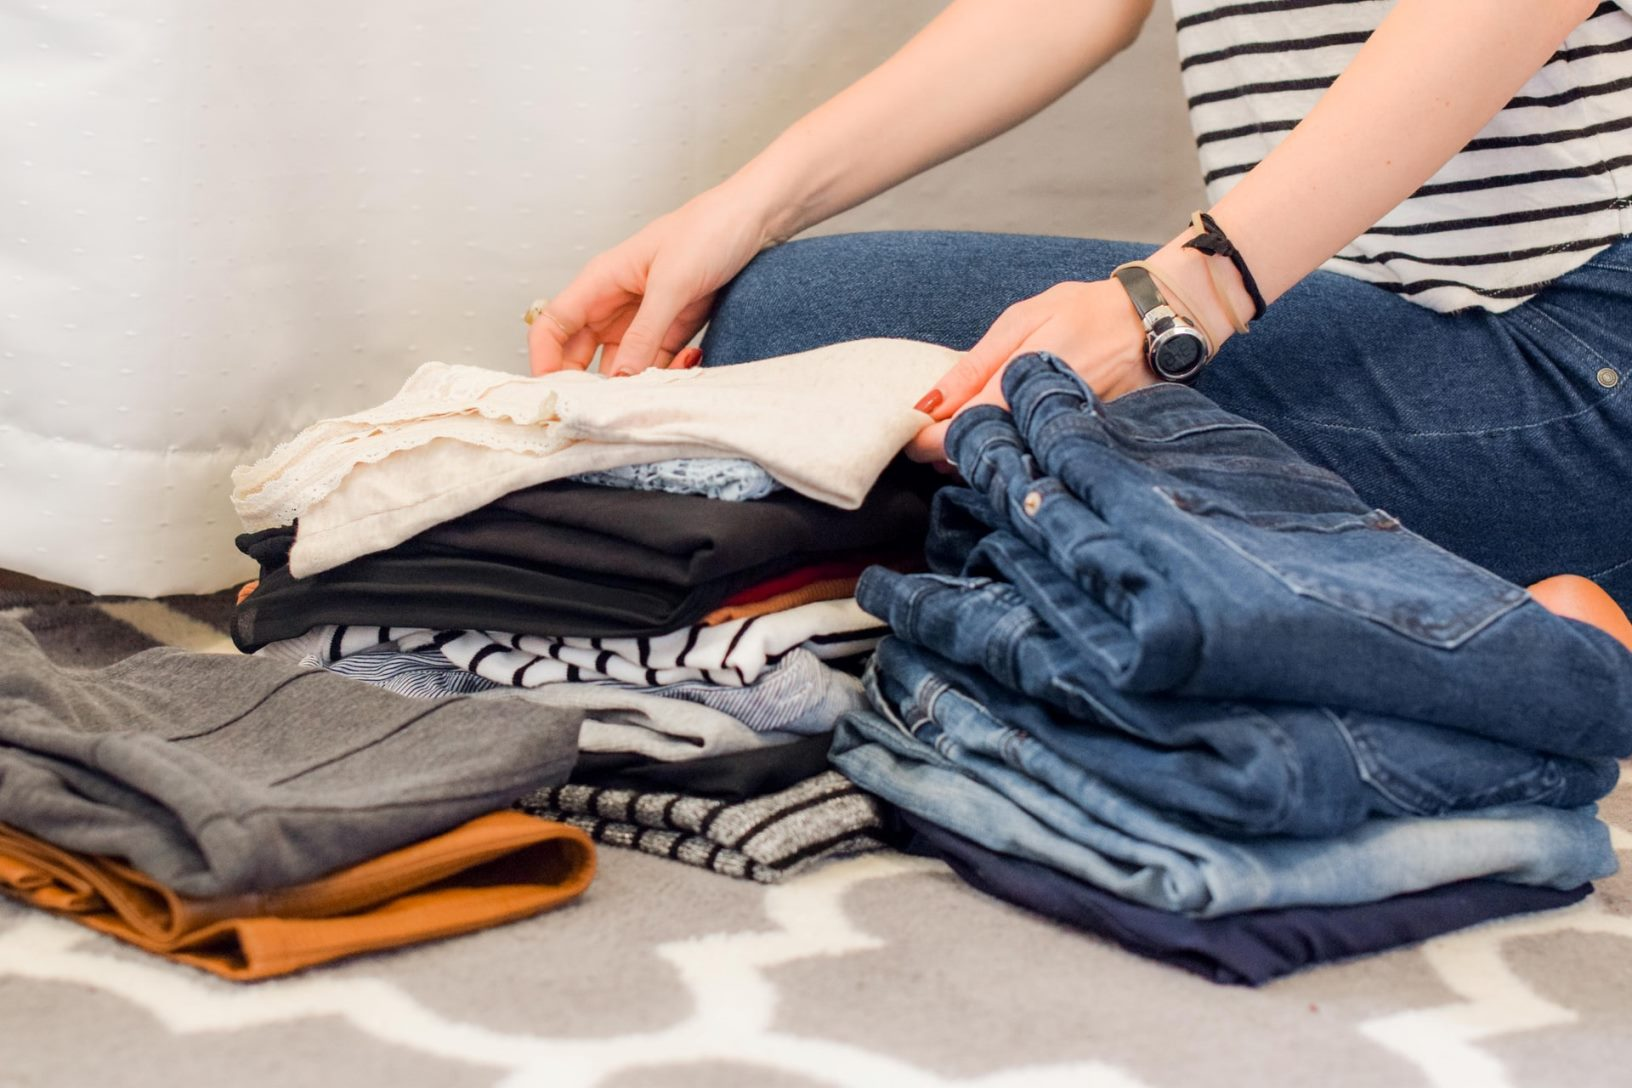 How to Properly Declutter and Make Your Home More Organized